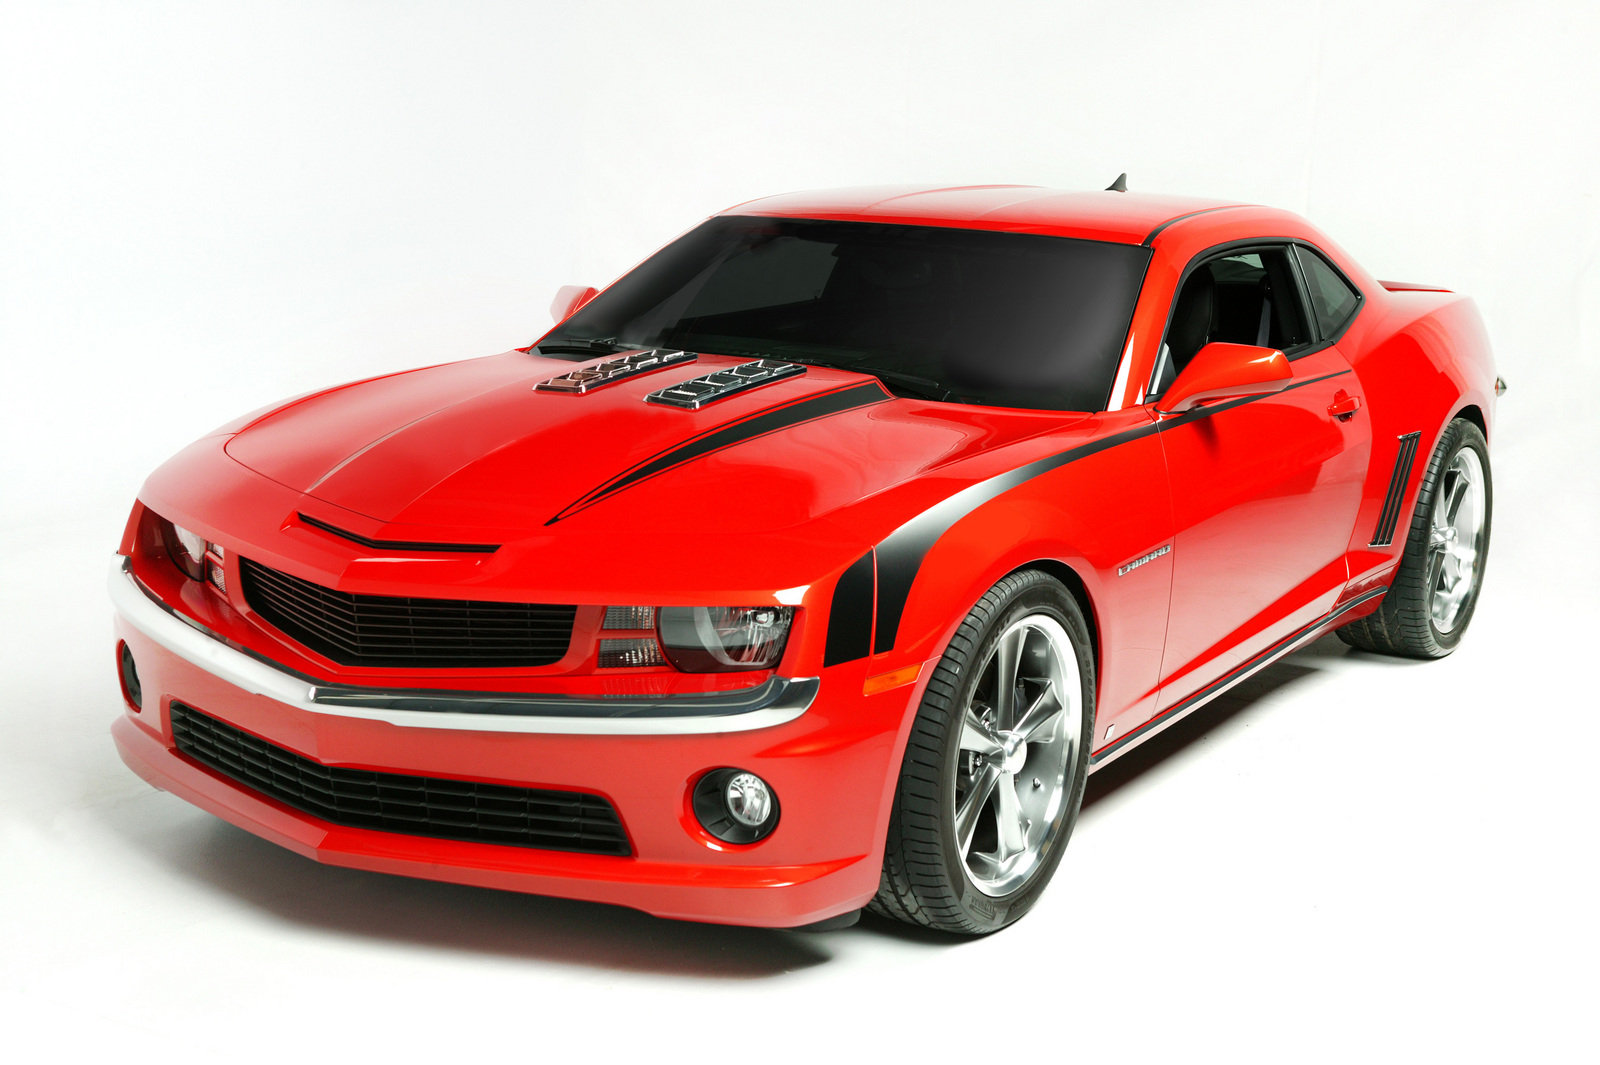 American Muscle Cars Mustang Wallpaper 2011 Chevrolet Camaro Ss By Retro Usa Top Speed